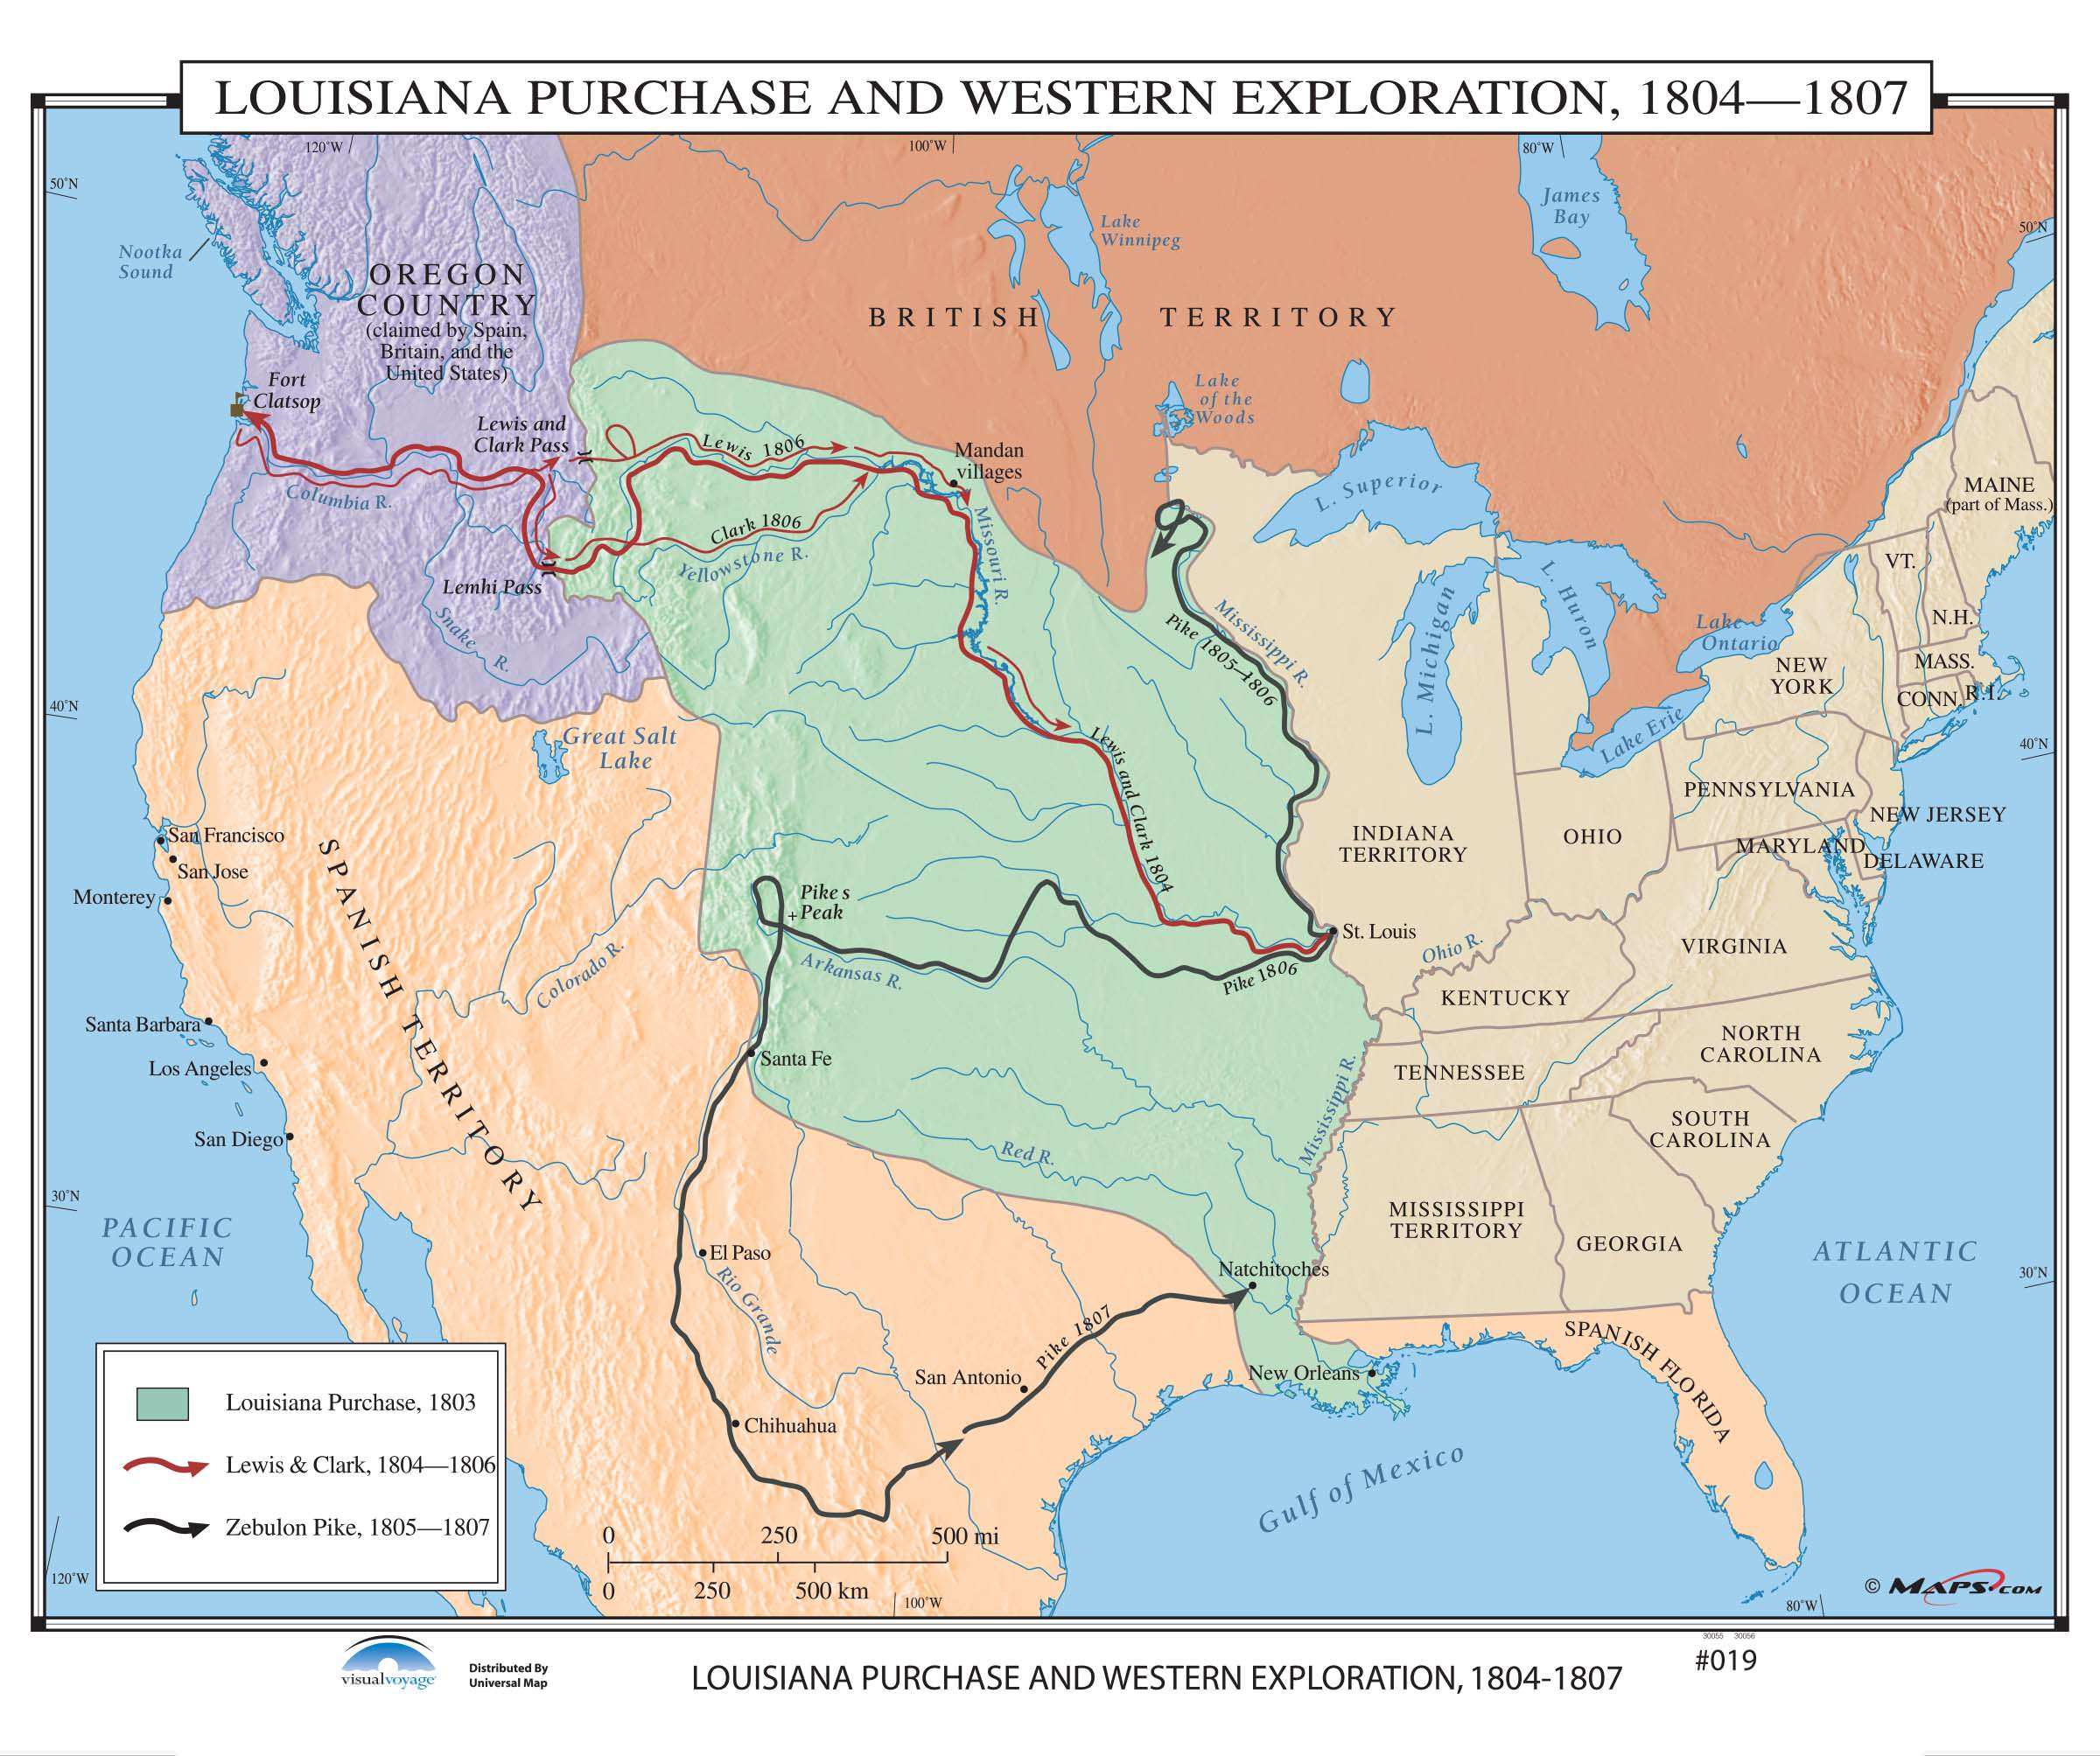 019 Louisiana Purchase & Western Exploration, 1804 1807 – KAPPA